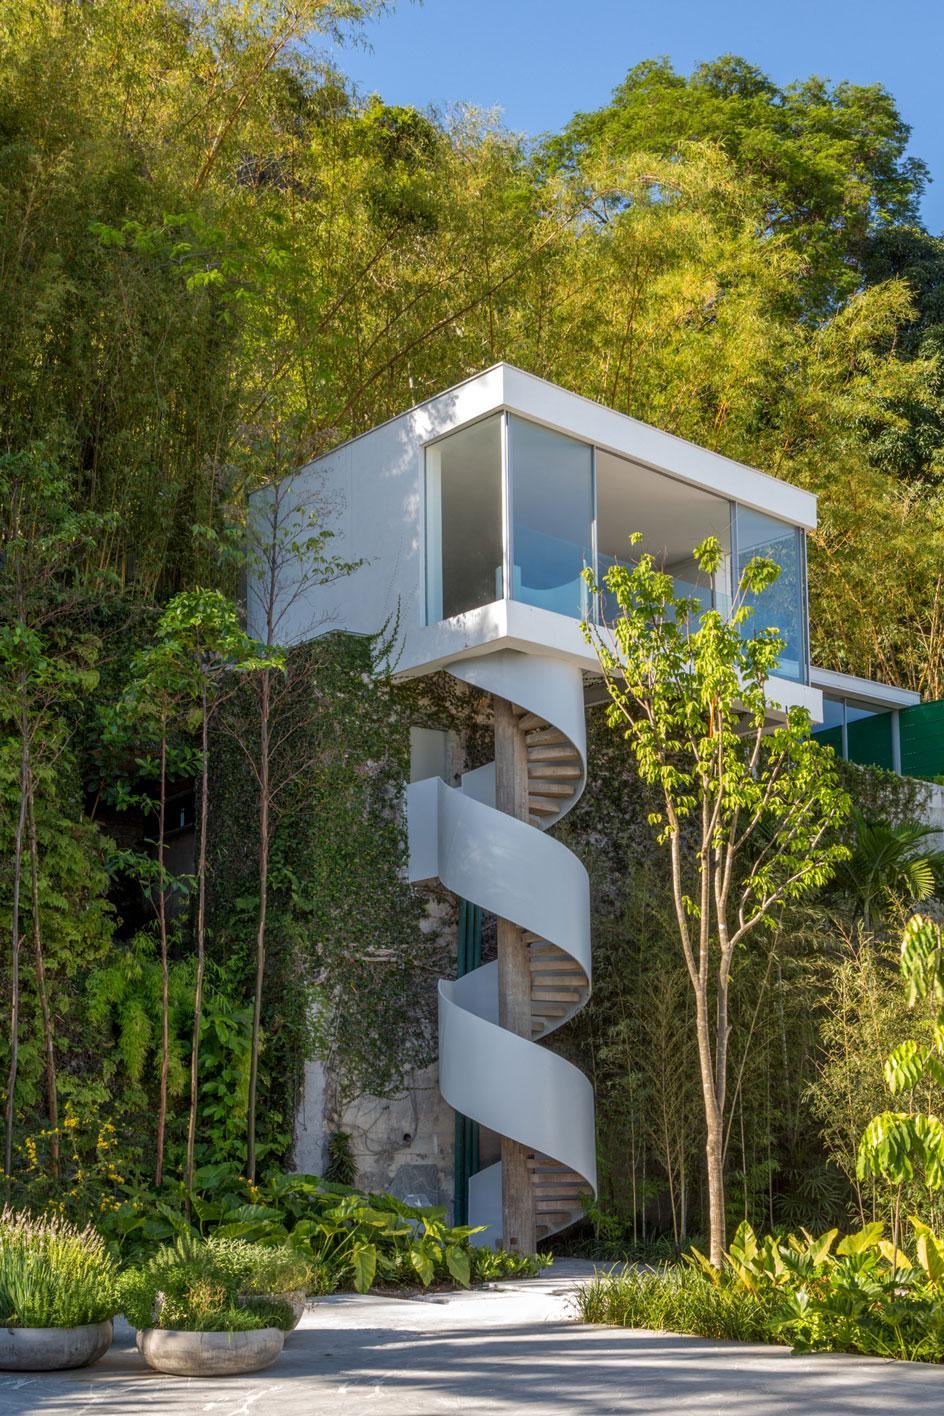 The staircase outside Adriana Varejão and Pedro Buarque's house in Rio de Janeiro, designed by Oscar Niemeyer in 1969